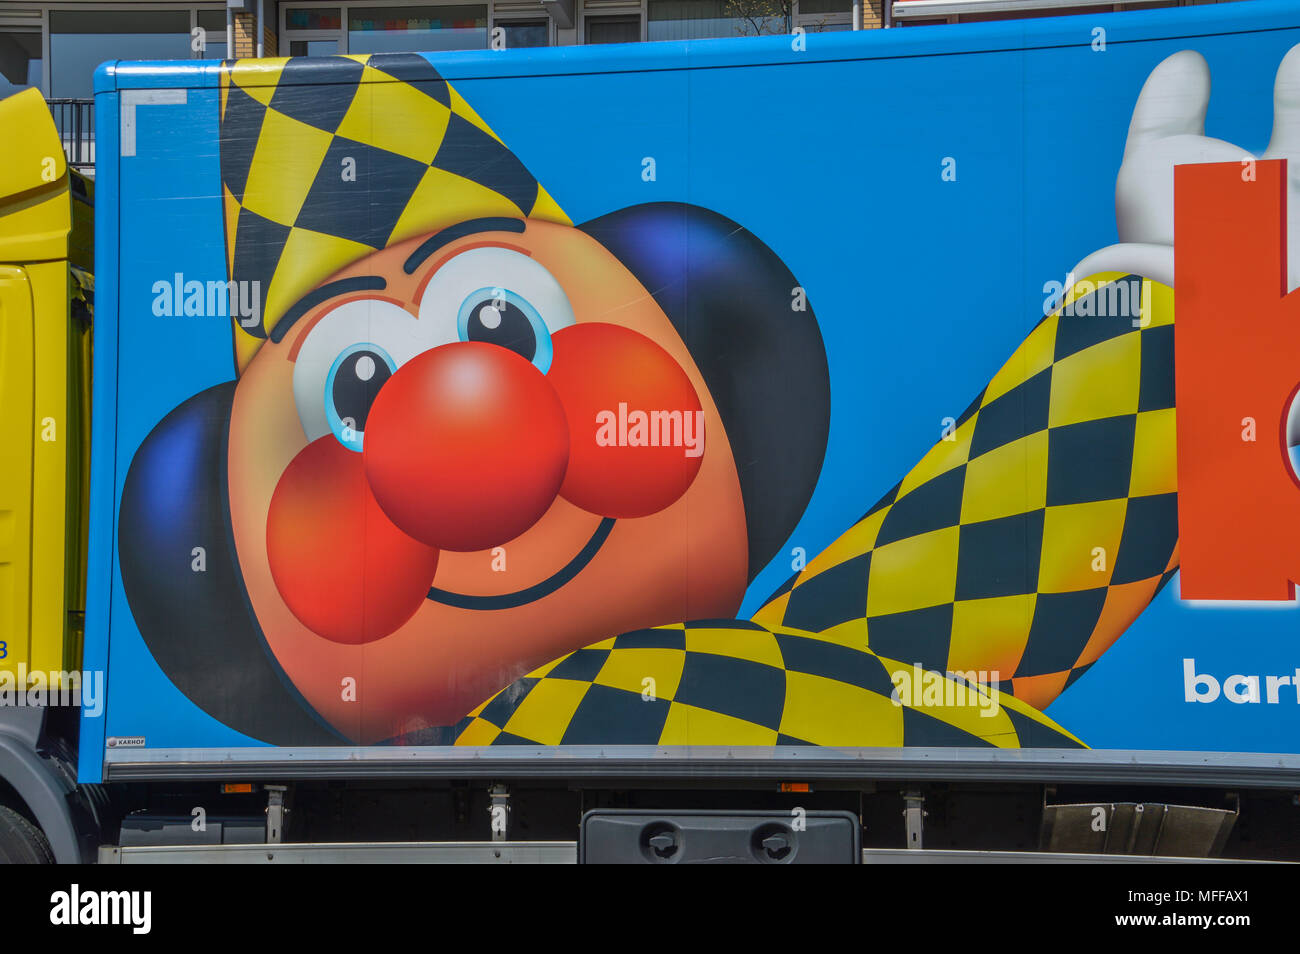 Bart Smit Toy Store Truck At Diemen The Netherlands - Stock Image